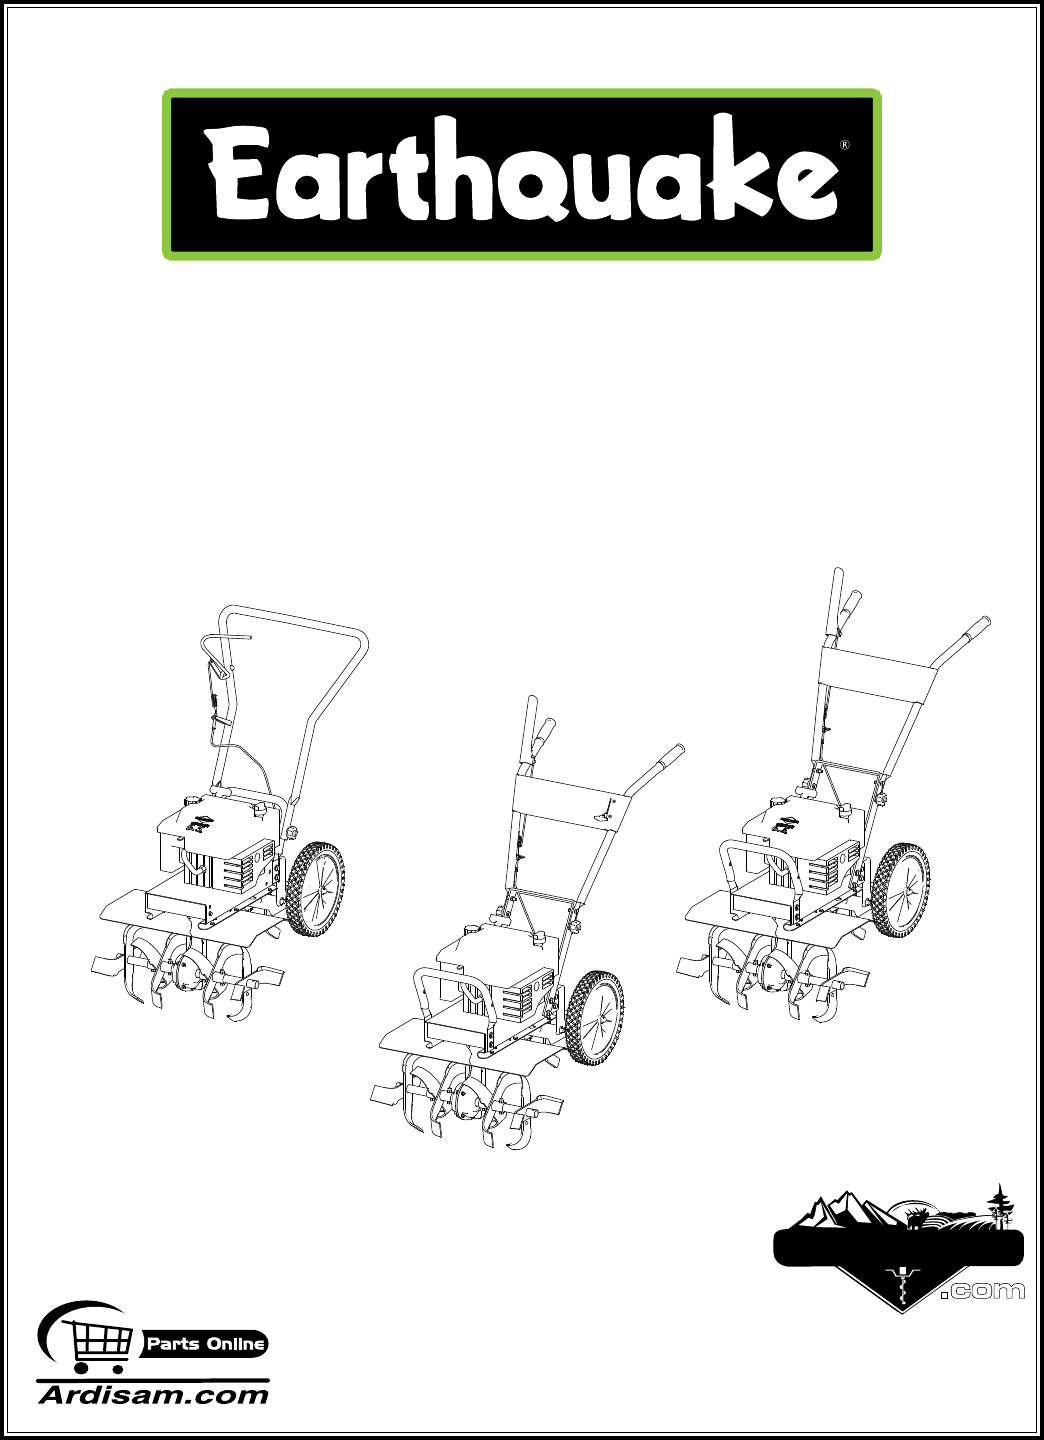 Earthquake Sound Tiller ROTOTILLERS User Guide